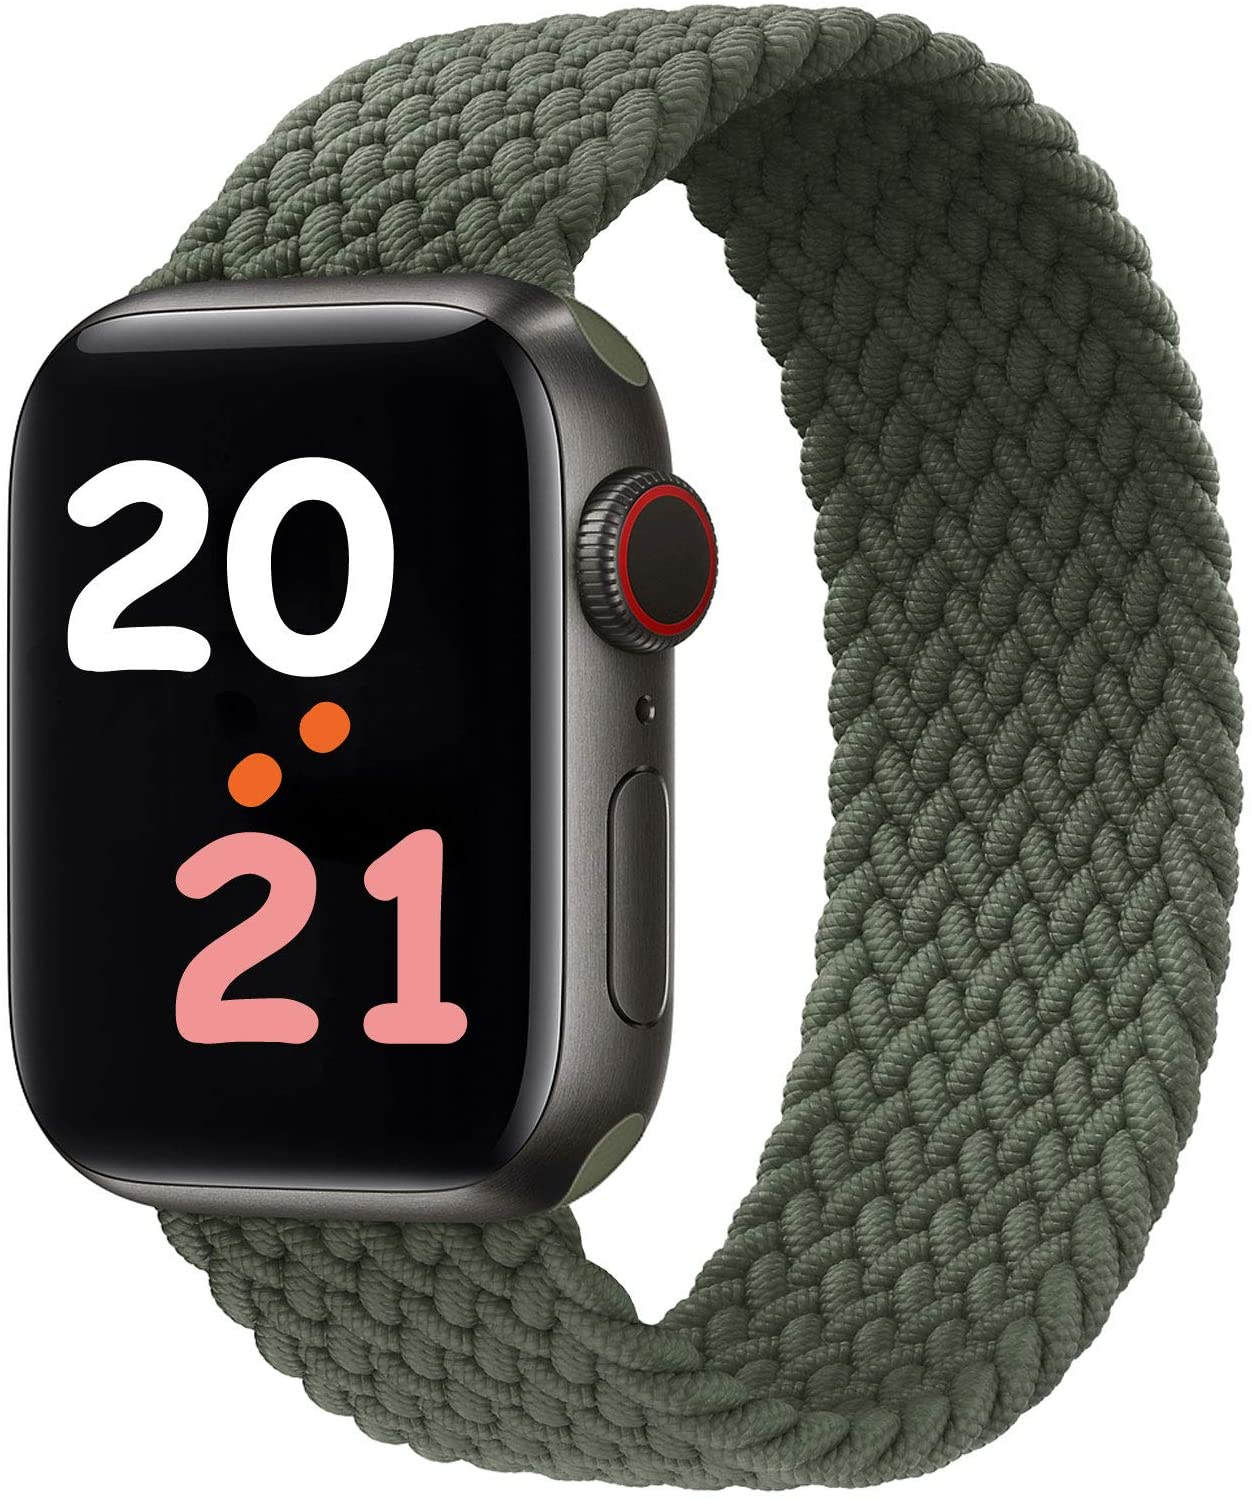 NUKELOLO Braided Solo Loop Strap Compatible with Apple Watch Bands 41mm 45mm 44mm 42mm 40mm 38mm, Soft Stretchable Sport Replacement Band for iWatch Series 7/6/SE/5/4/3/2/1